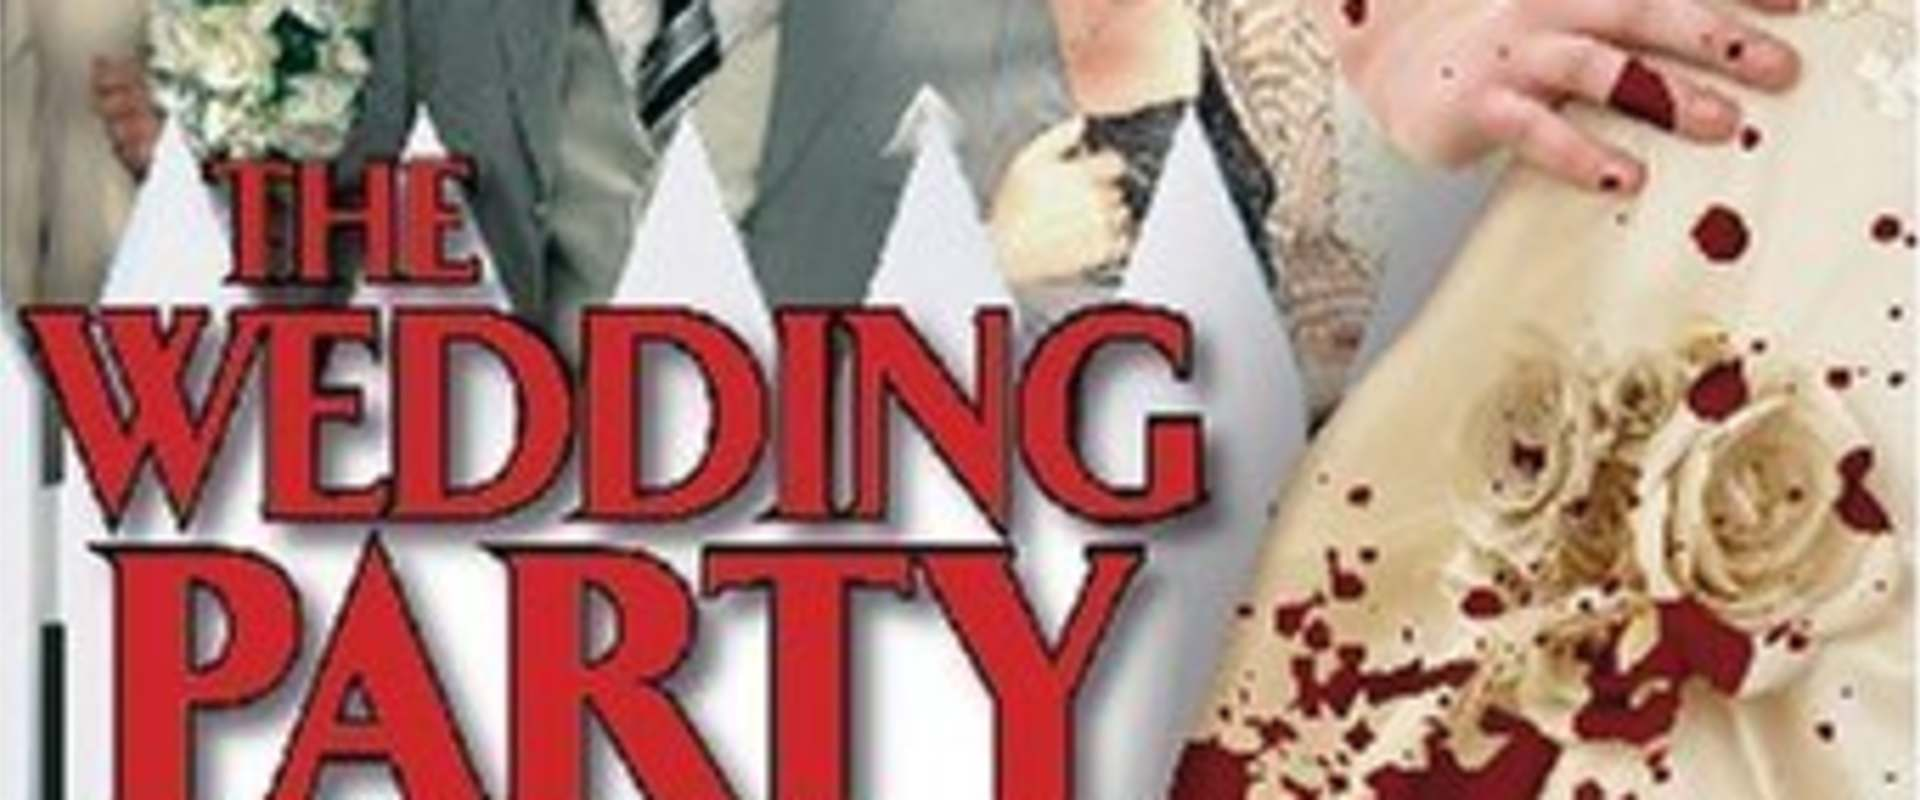 The Wedding Party background 1